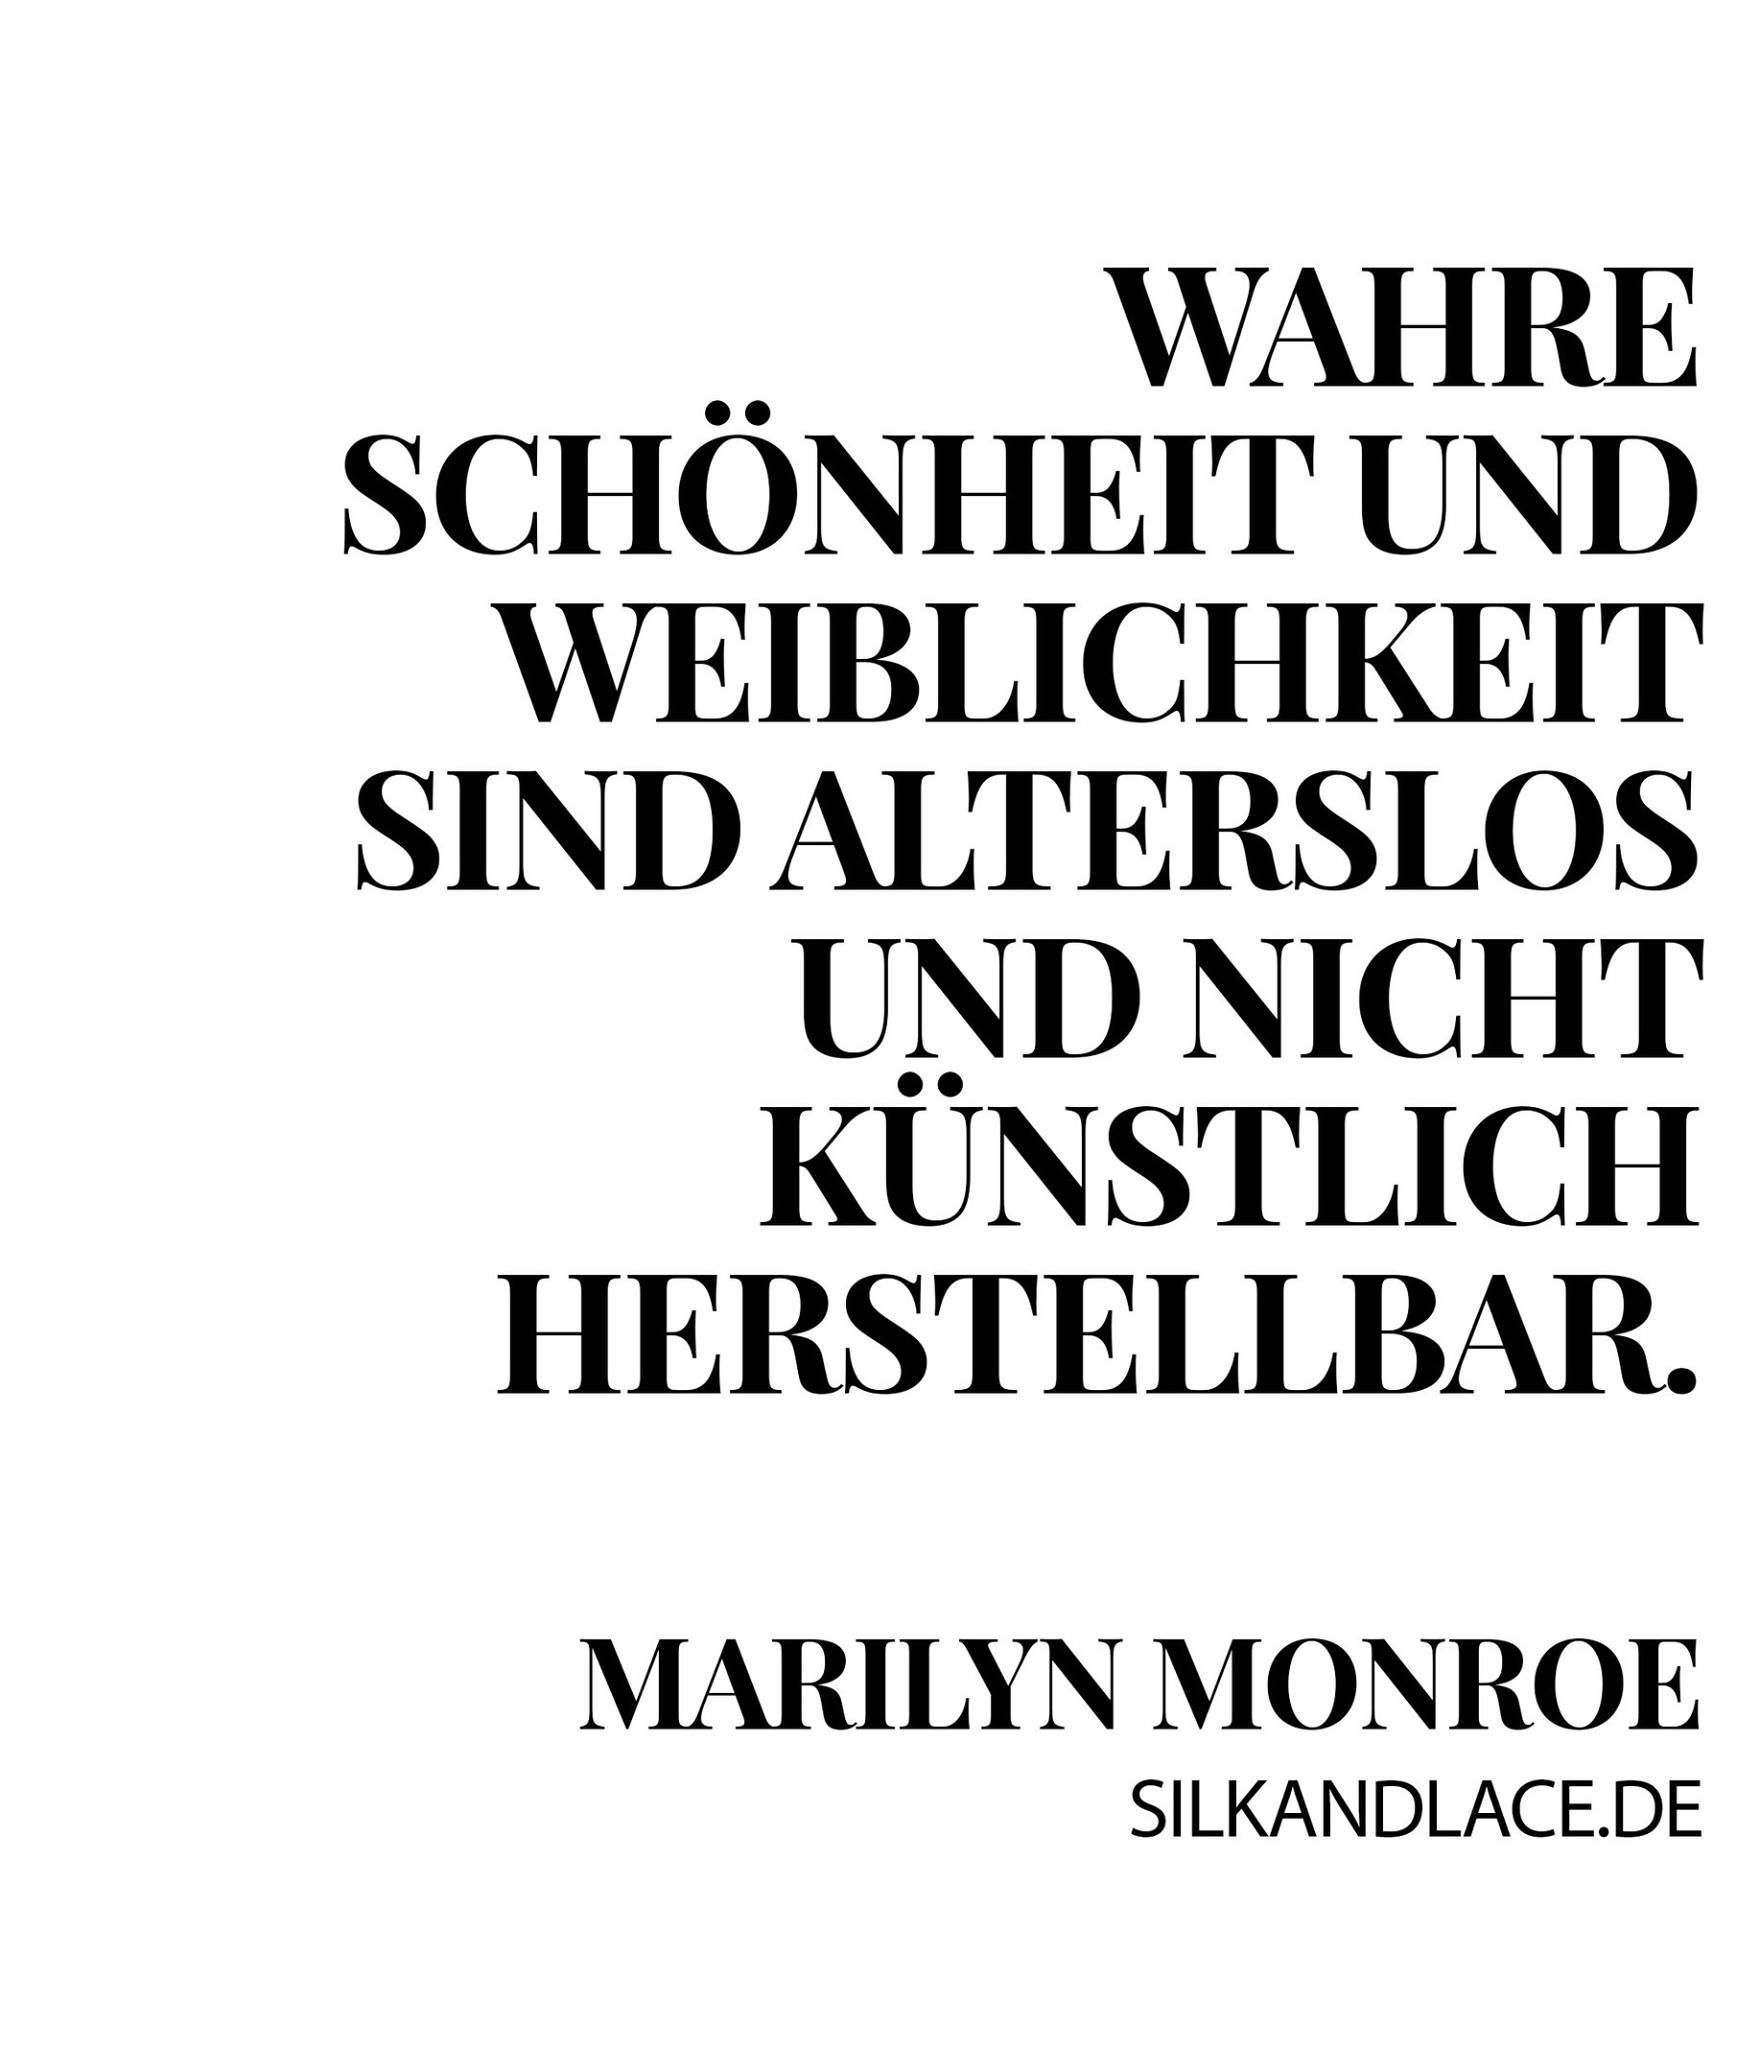 true spruch wahr zitate sch nheit weiblichkeit marilyn monroe. Black Bedroom Furniture Sets. Home Design Ideas